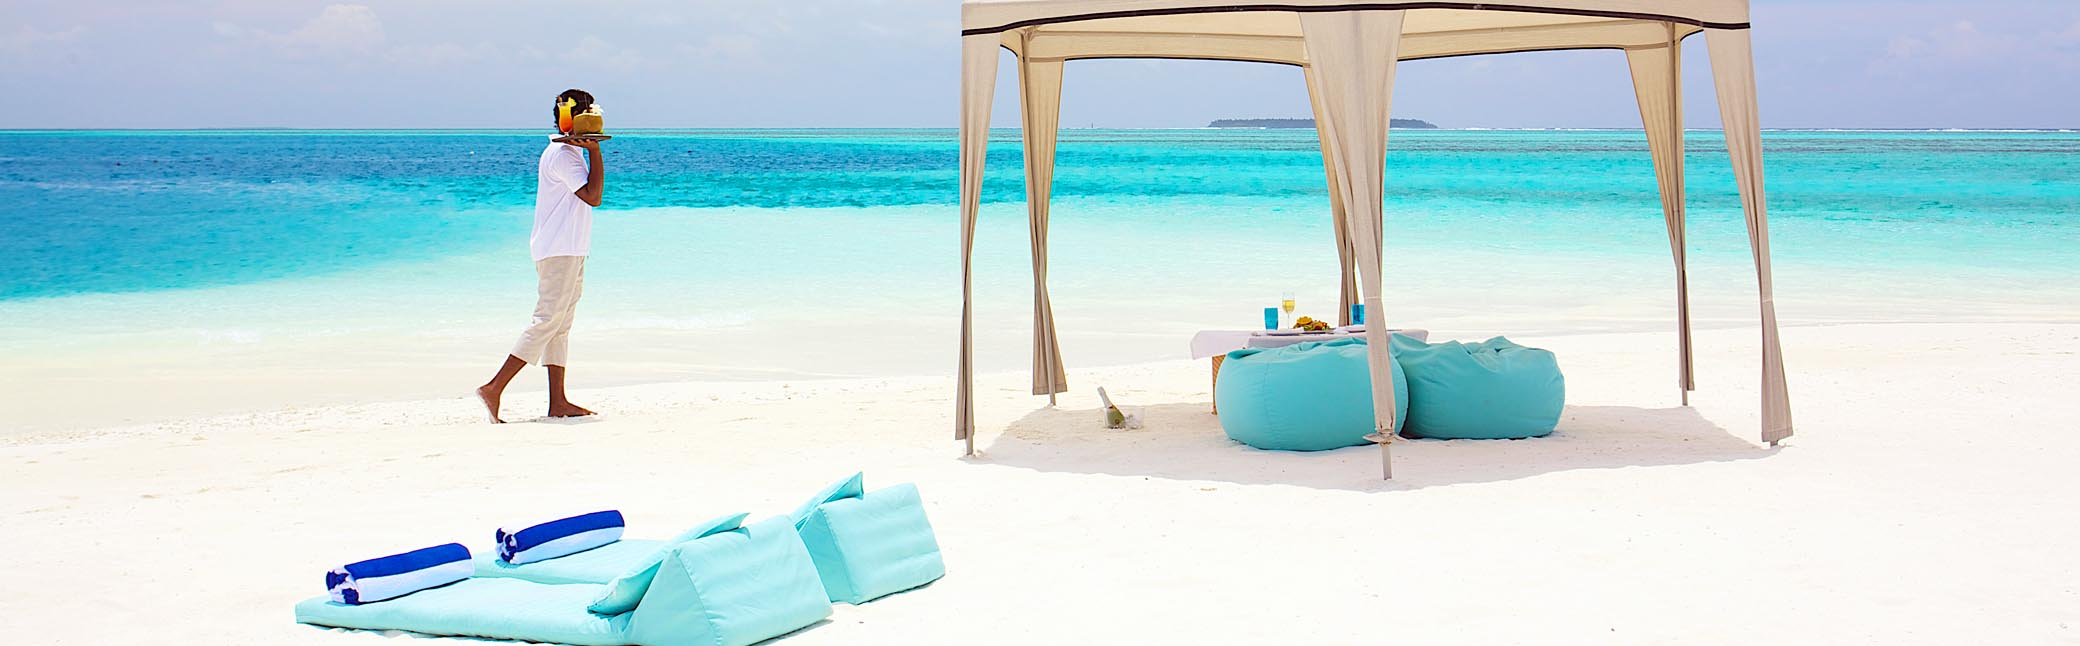 Maldives Romantic Resorts by LUXUR HOLIDAYS